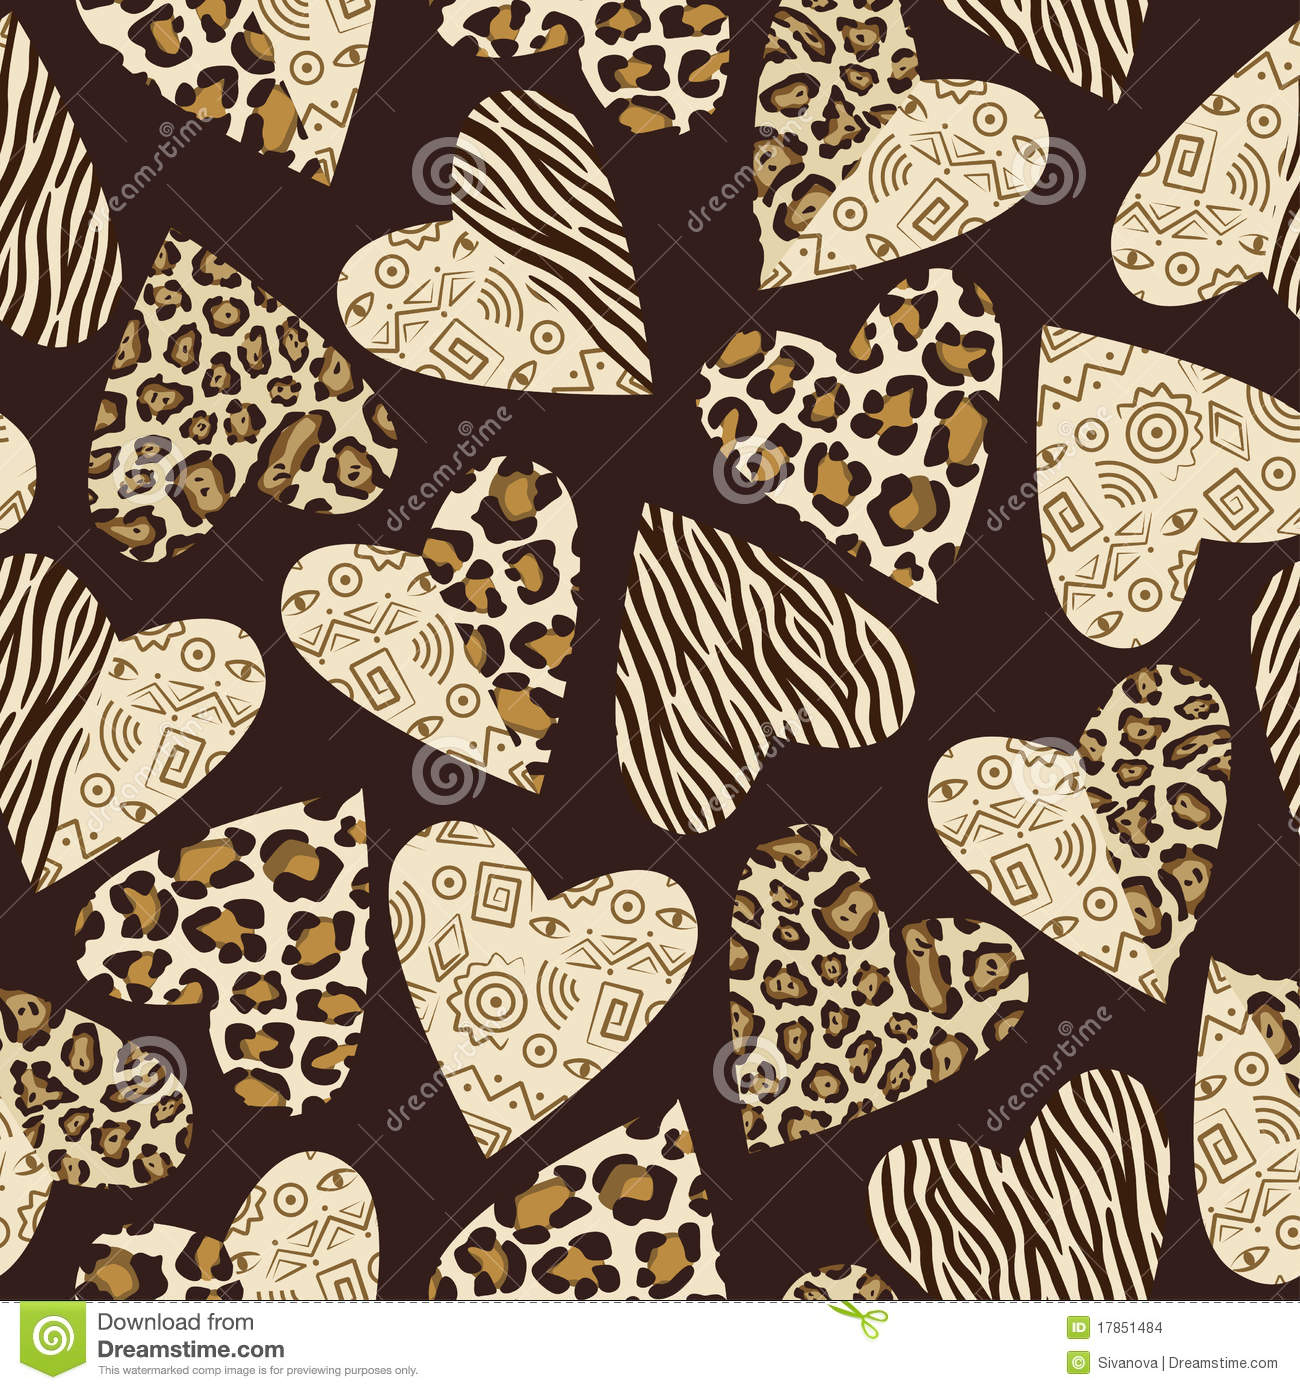 Robert V. Barron Wallpapers Leopard Abstract Pattern Seamless Background Next Post Woven Bamboo